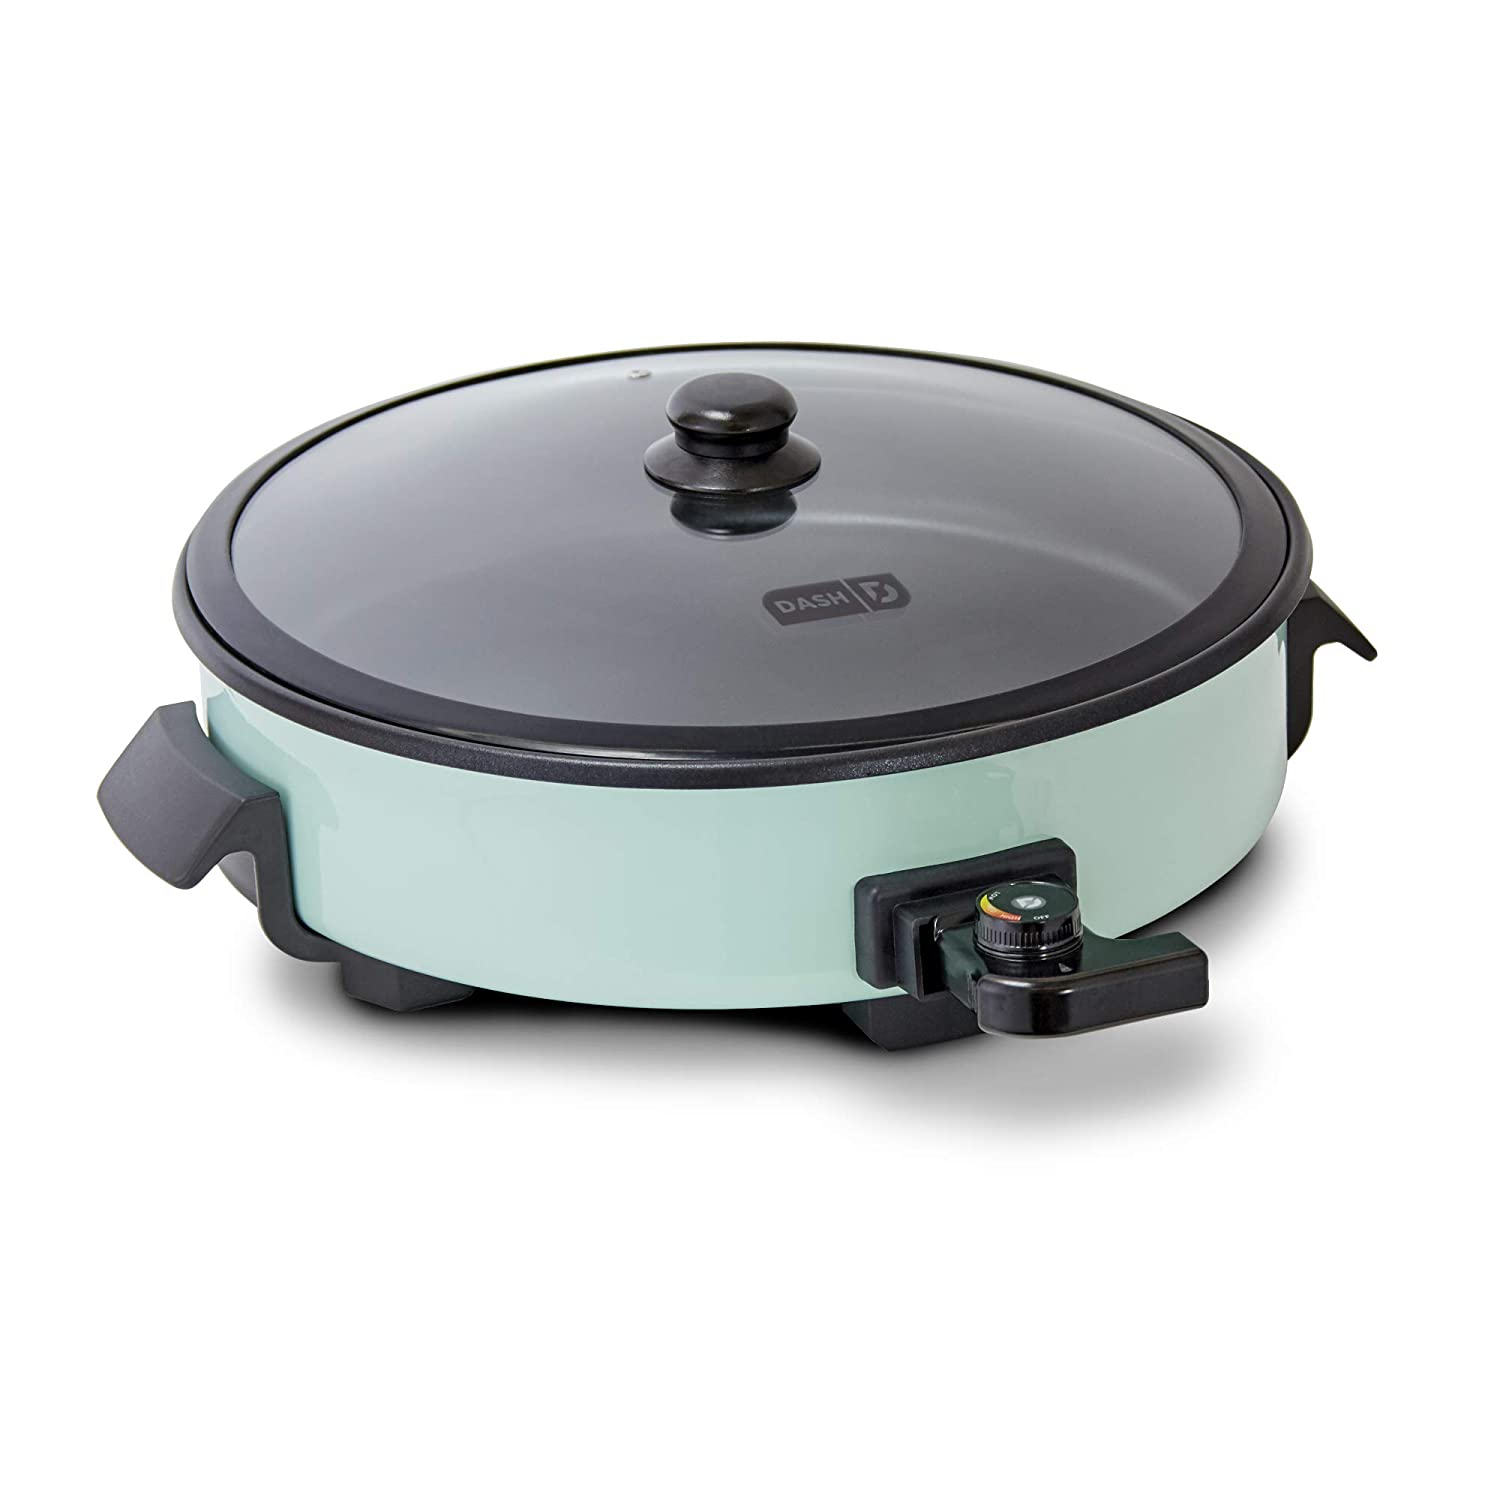 DASH DRG214AQ Family Size Rapid Heat Electric Skillet + Hot Oven Cooker with 14 inch Nonstick Surface + Recipe Book for Pizza, Burgers, Cookies, Fajitas, Breakfast & More 20 Cup Capacity Aqua